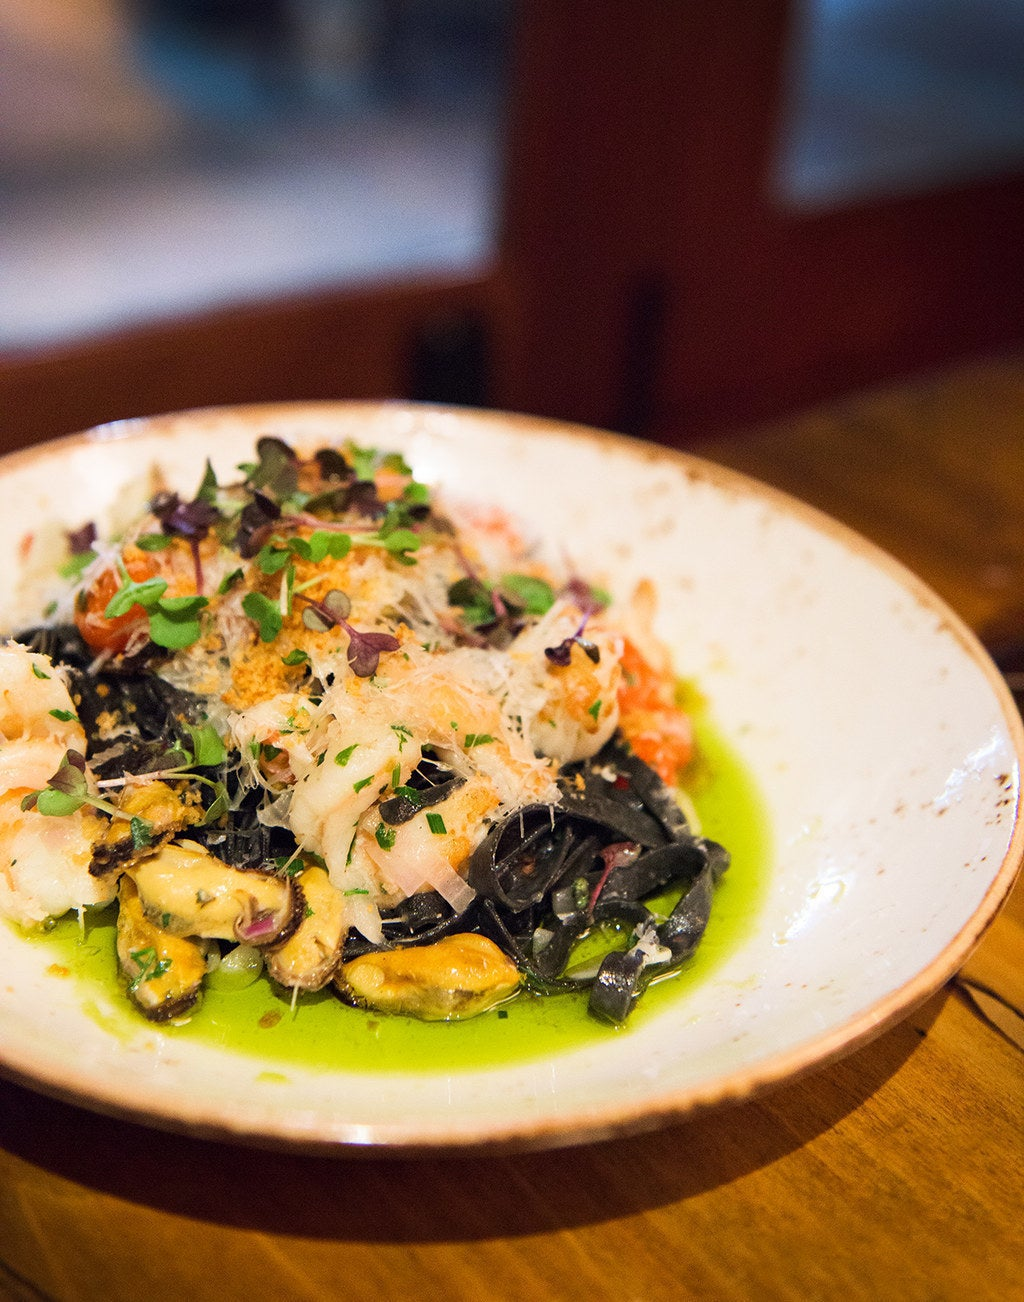 Squid ink tagliatelle with mussels, shrimp, parmigiano-reggiano, and infused chive oil at Red Pump.